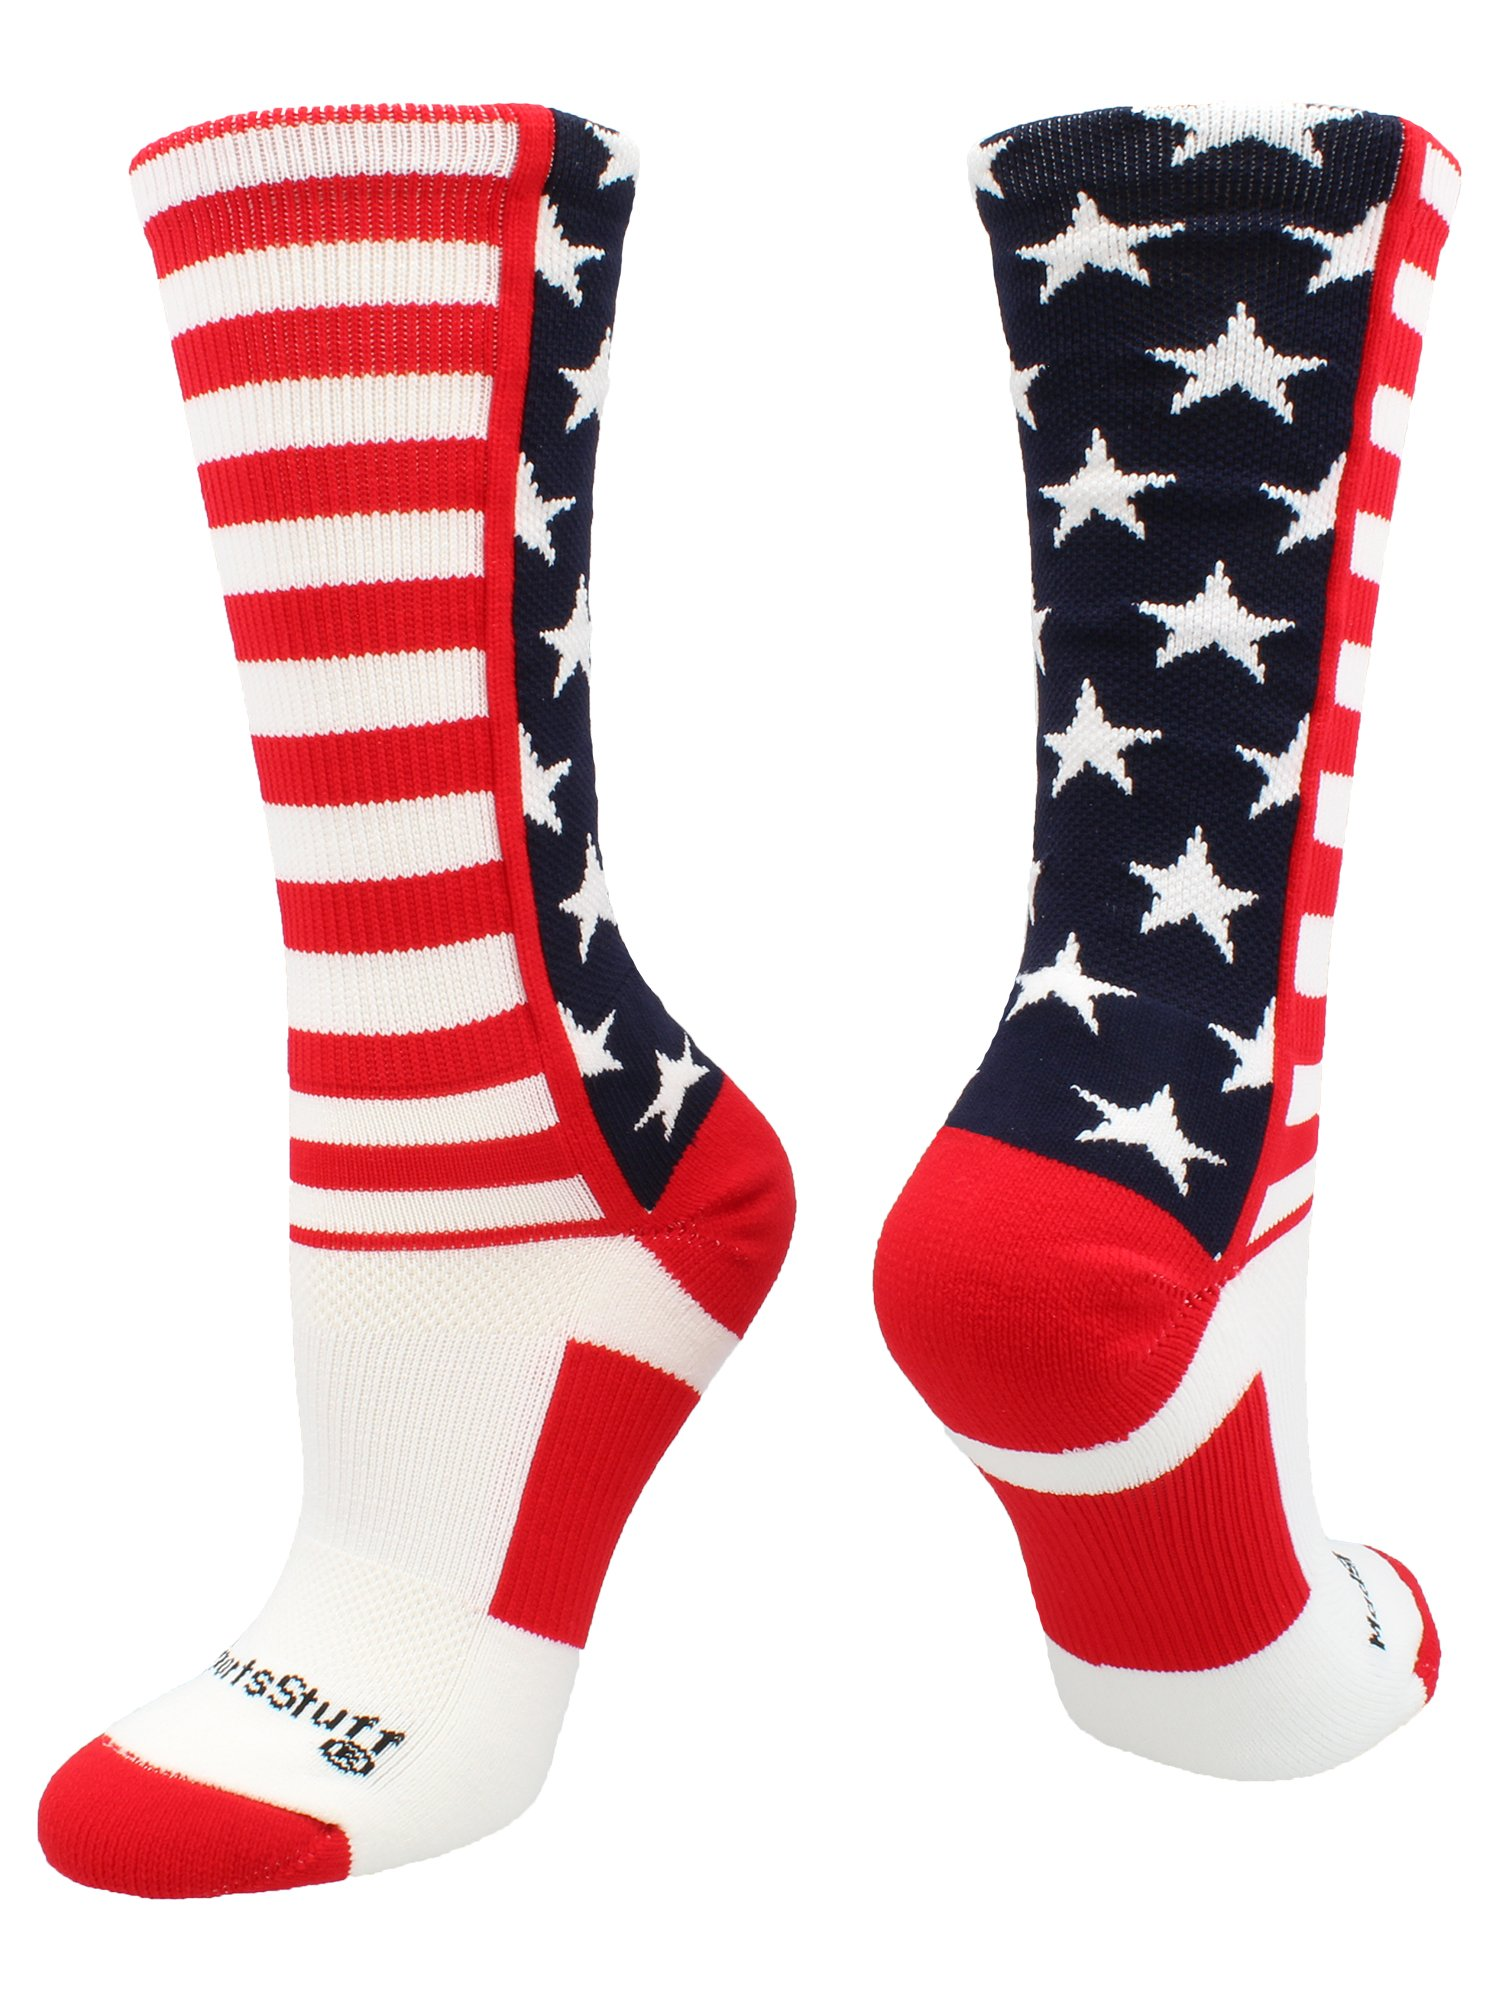 MadSportsStuff USA American Flag Stars Stripes Crew Socks (Navy/Red/White, Small) by MadSportsStuff